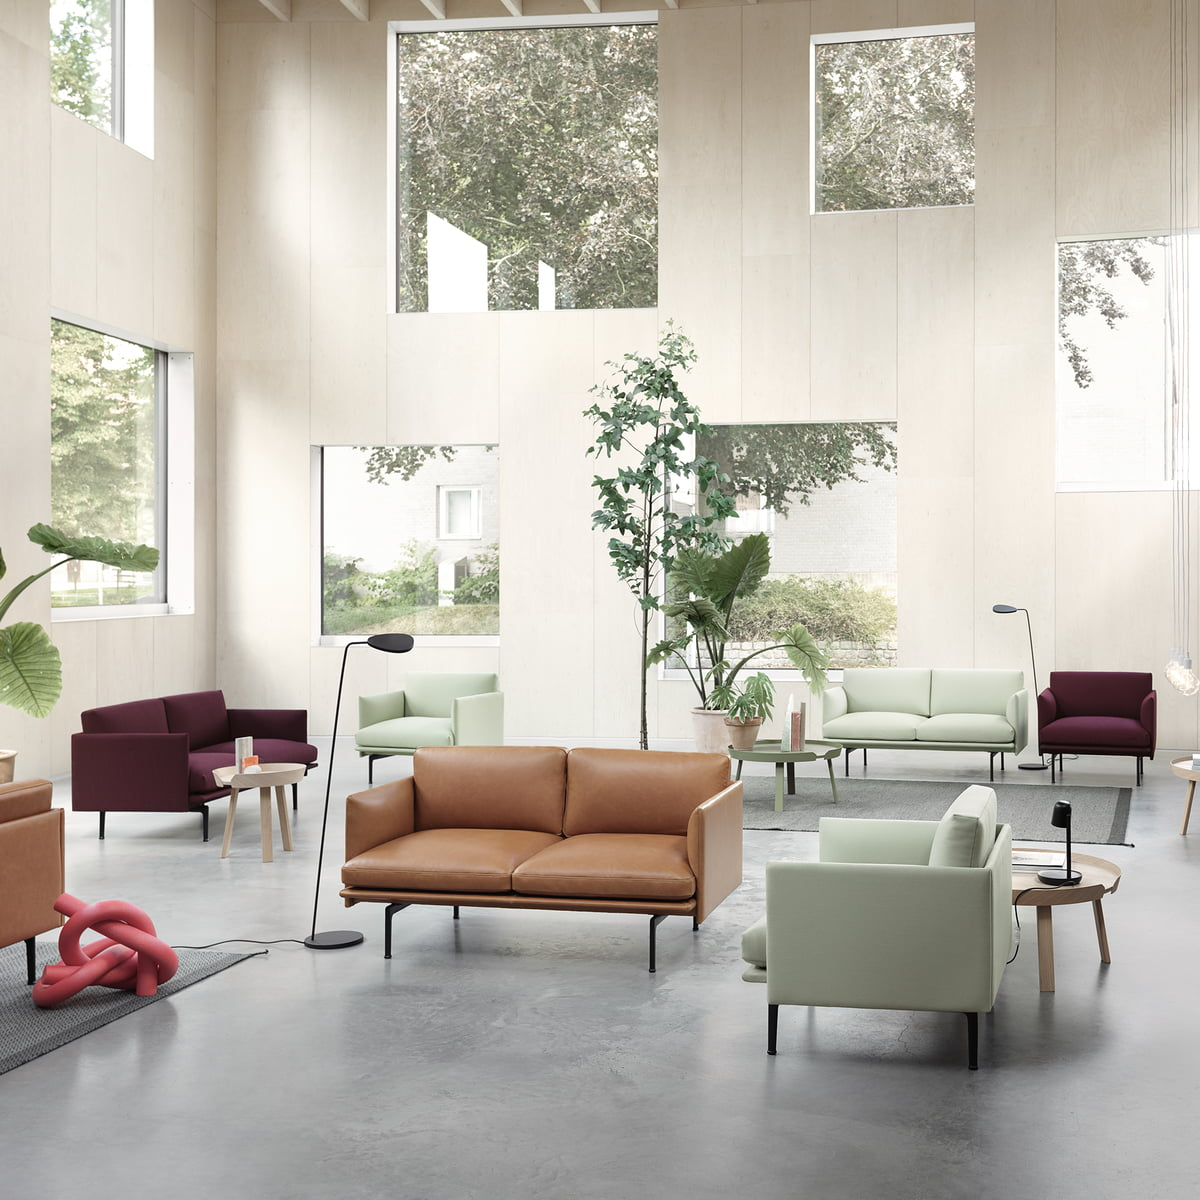 140 Cm Outline Sofa Studio Muuto Connox